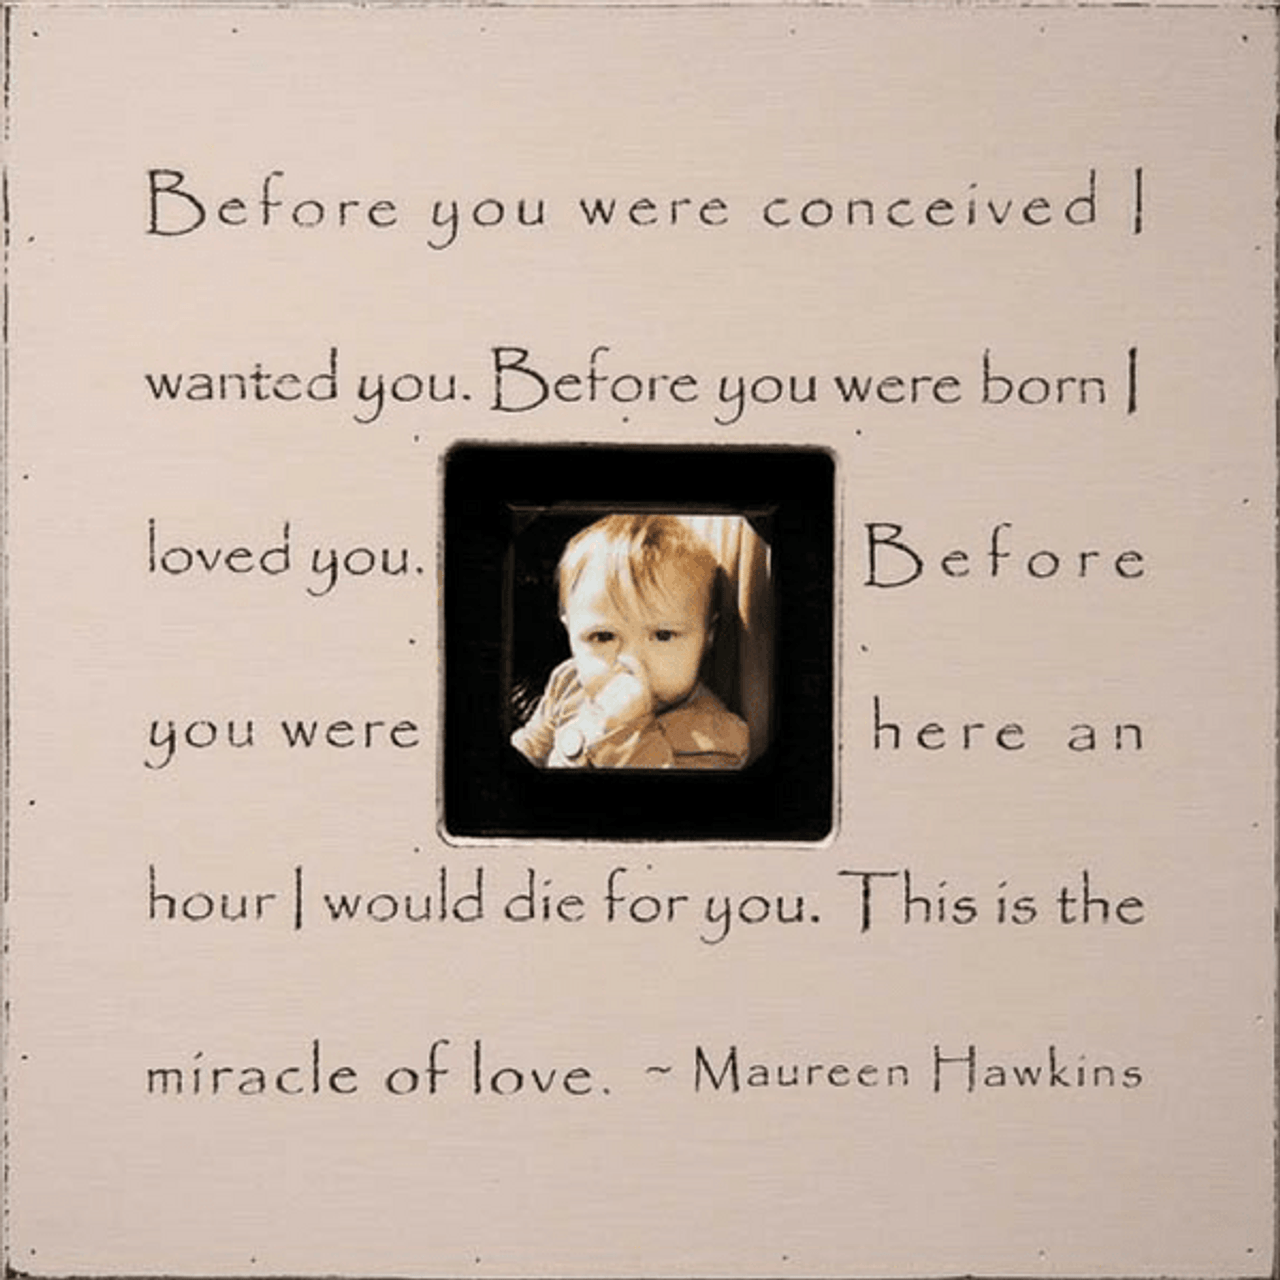 before you were conceived - photo box